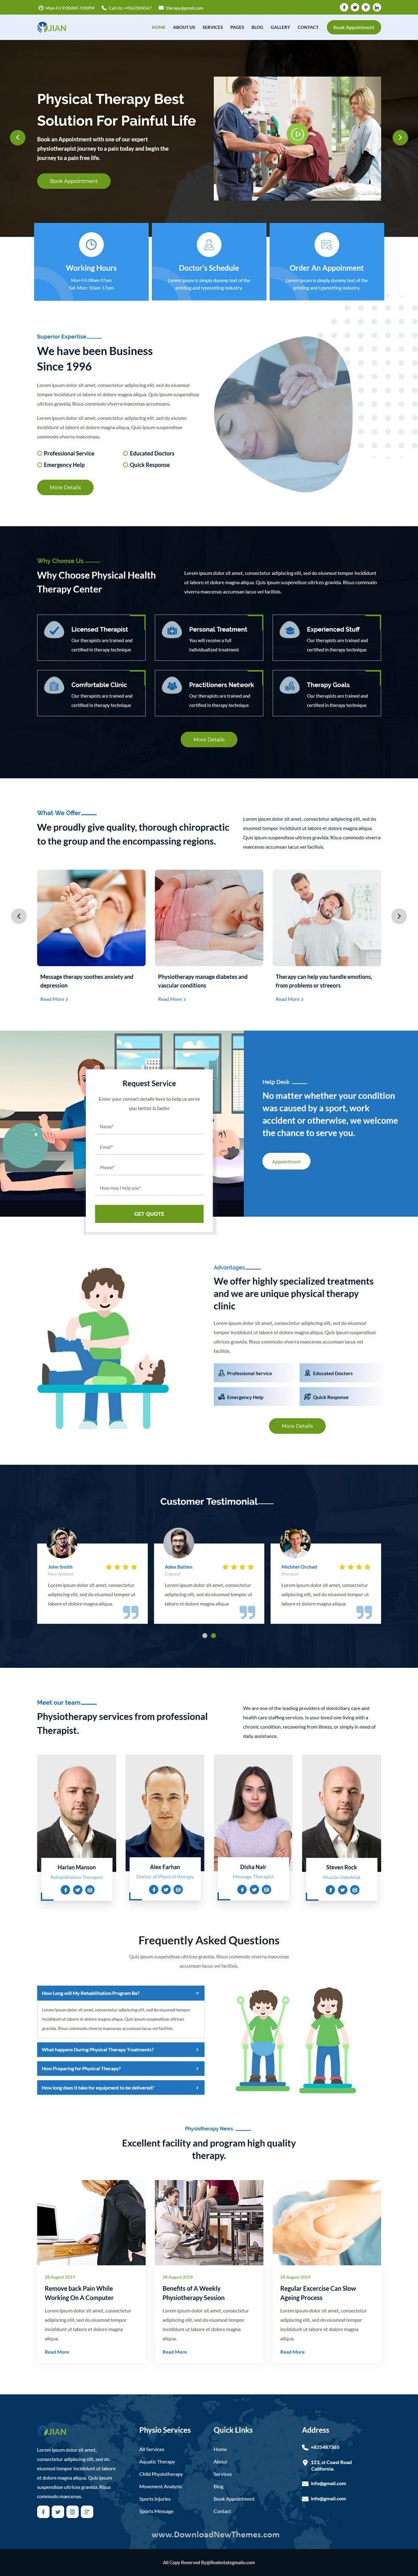 Jian Is A Clean And Modern Design 2in1 Responsive Bootstrap Html Template For Physical Therapy And Rehabilitation Ce Physics Rehabilitation Physical Therapy